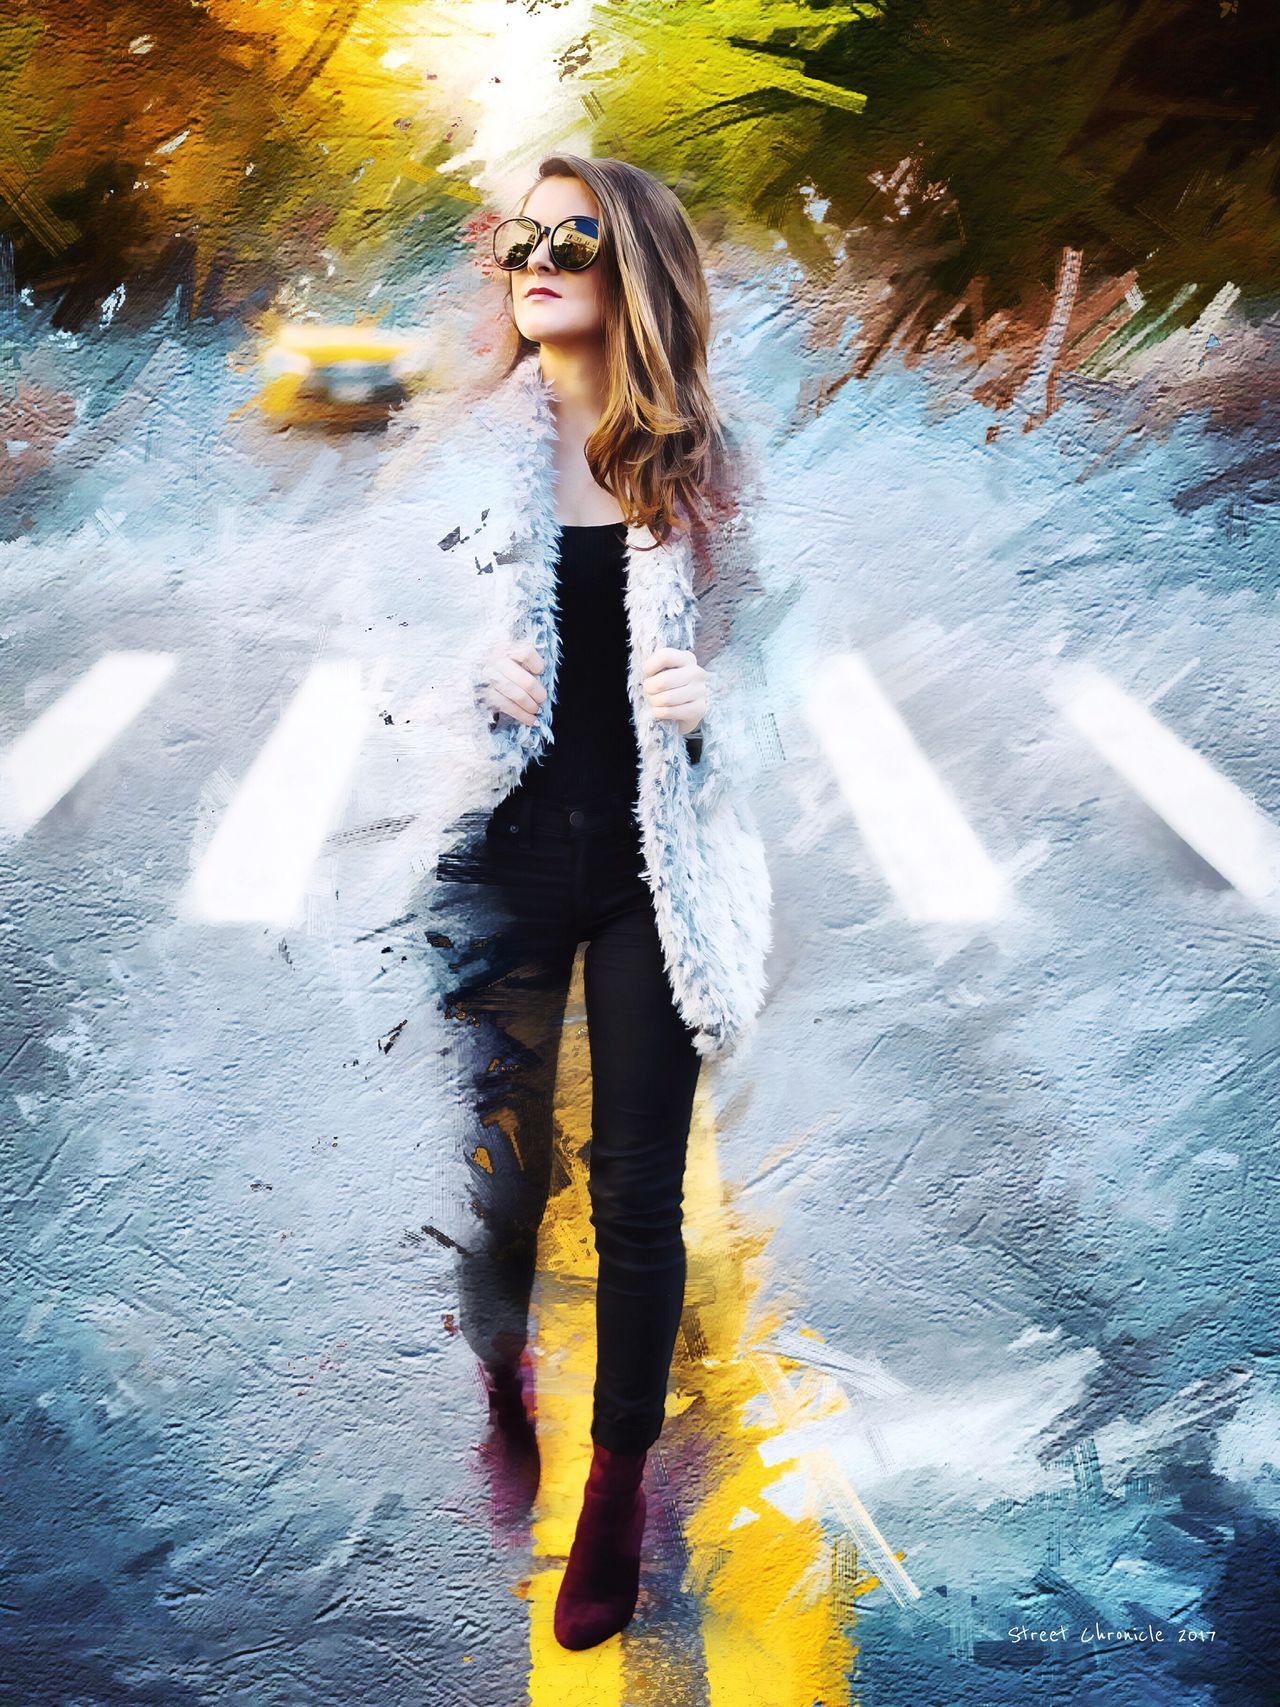 One Person Fashion Lifestyles Sunglasses Leisure Activity Real People Full Length Women Outdoors Motion Young Adult Day People Adult NYC Art Gallery Art Artist Style Arts Culture And Entertainment Lifestyle Art, Drawing, Creativity Artistic Digital Art Fashion